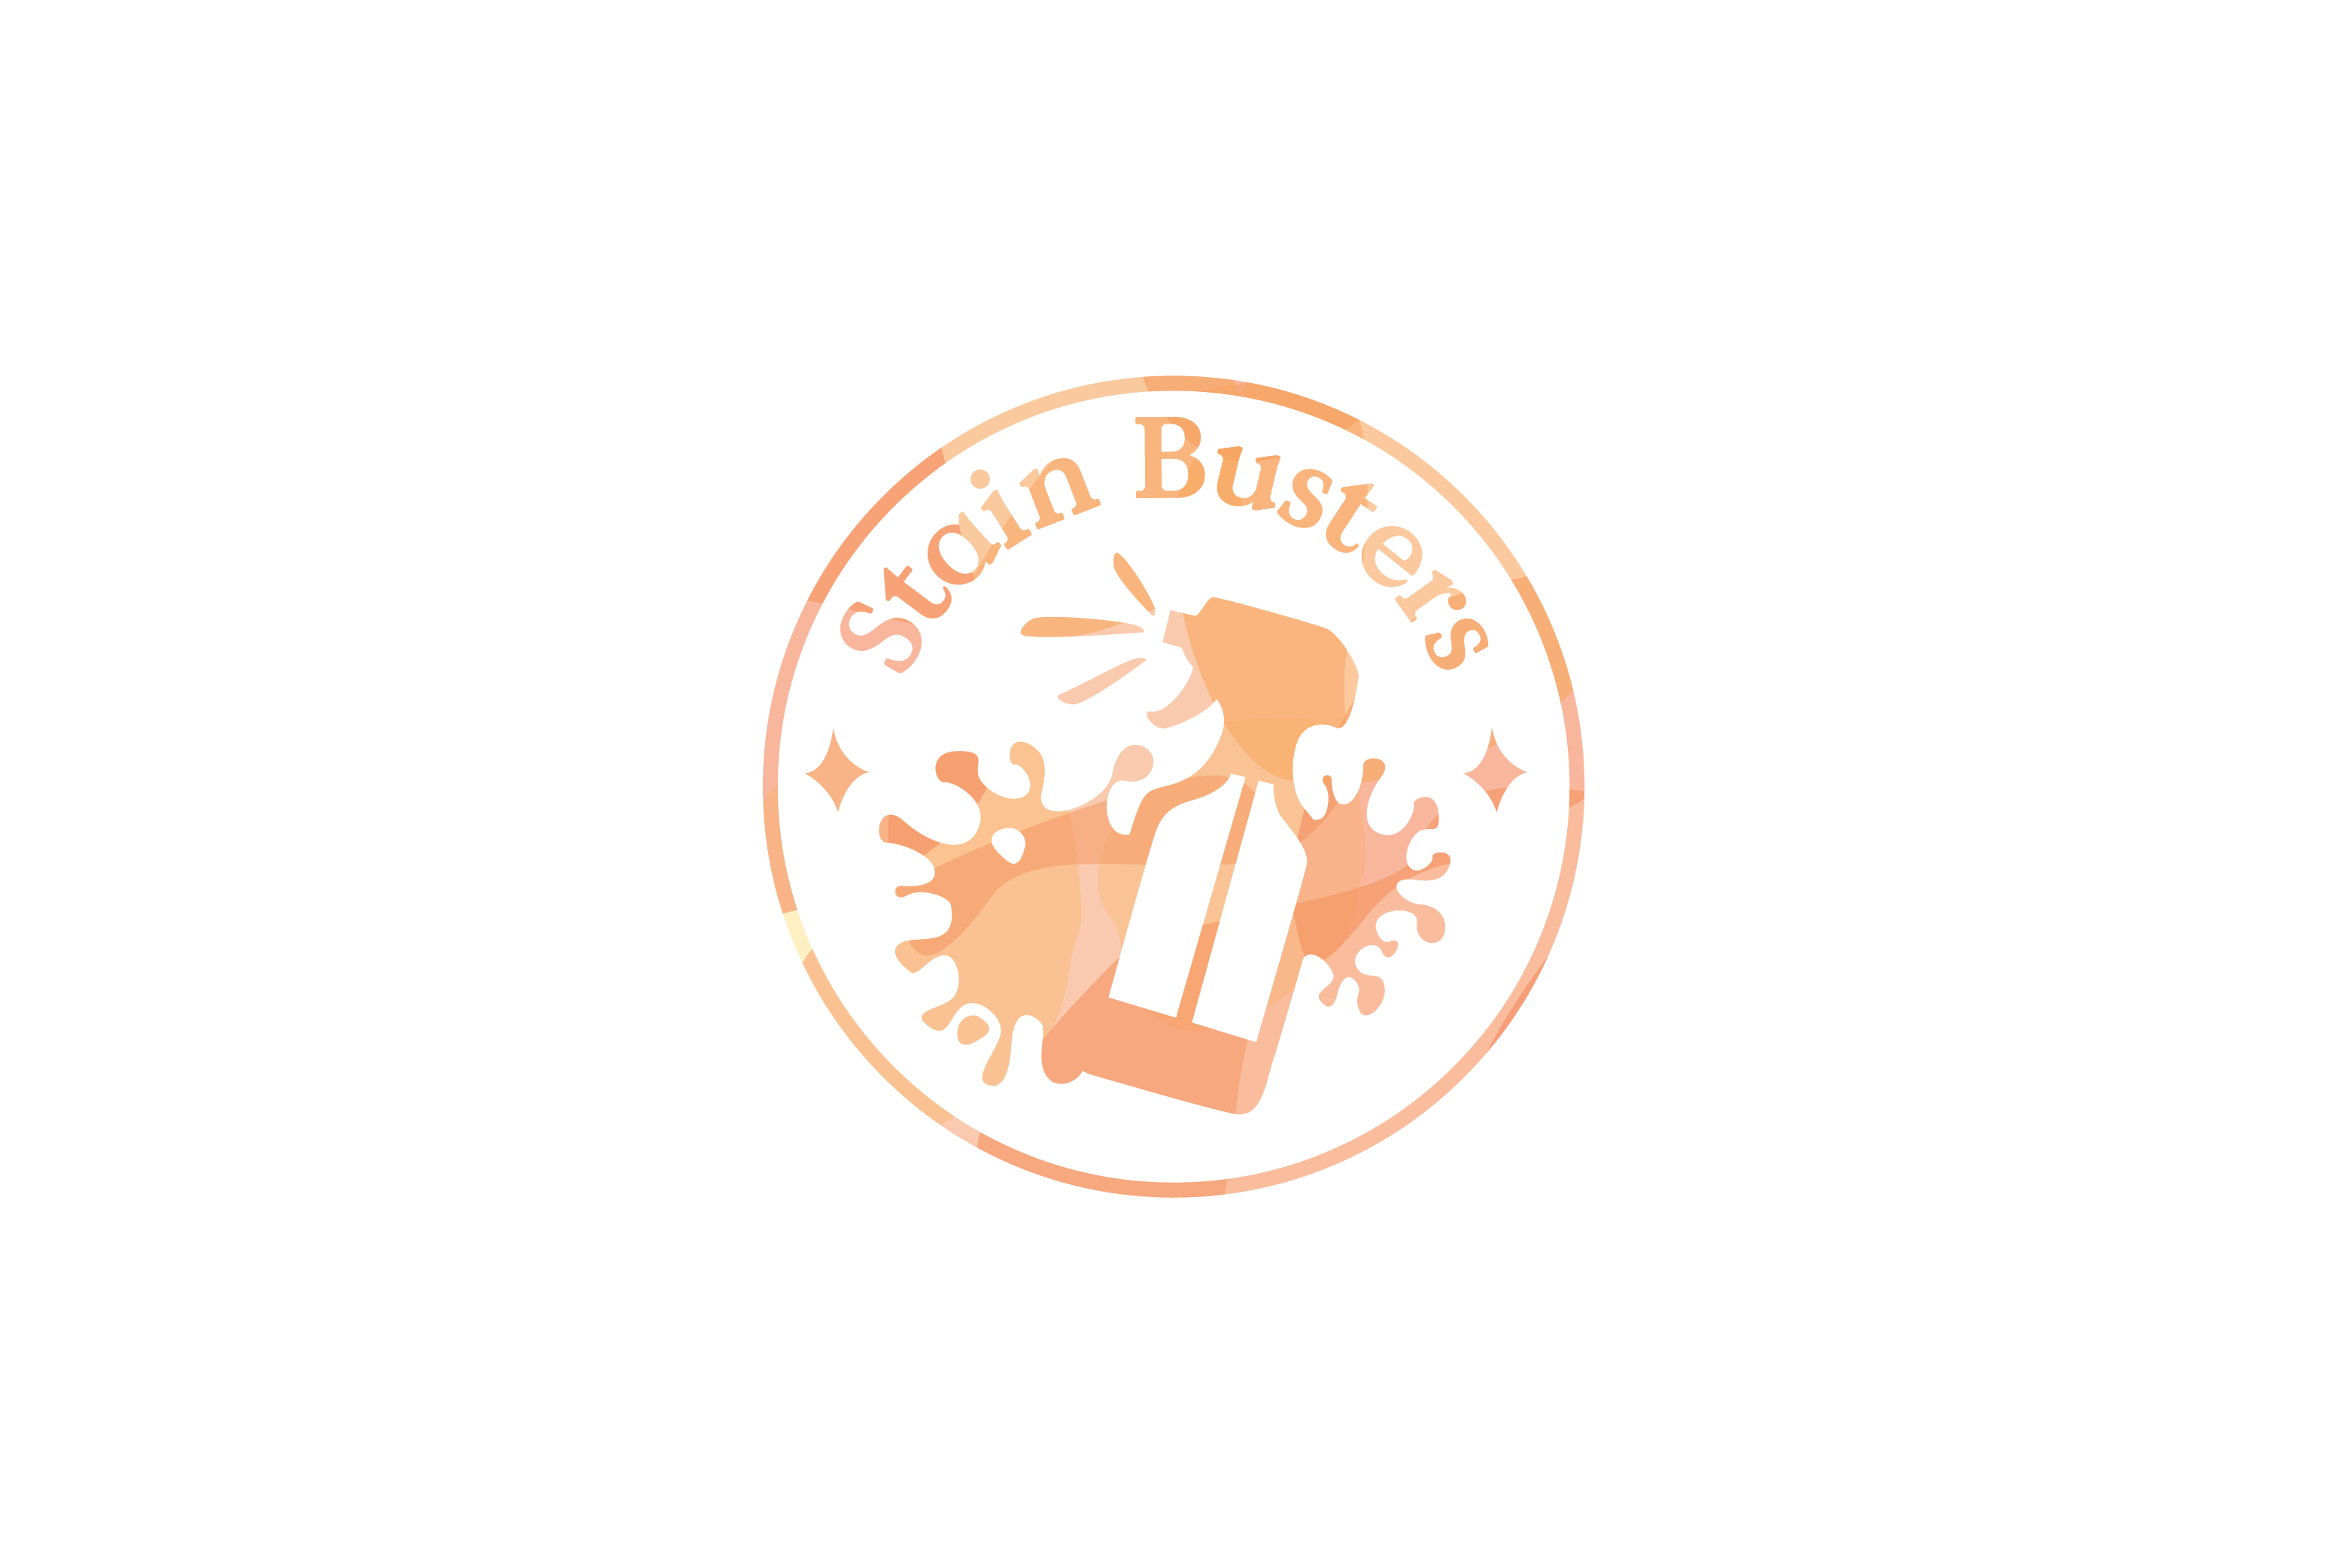 orange stainbusters illustrated logo